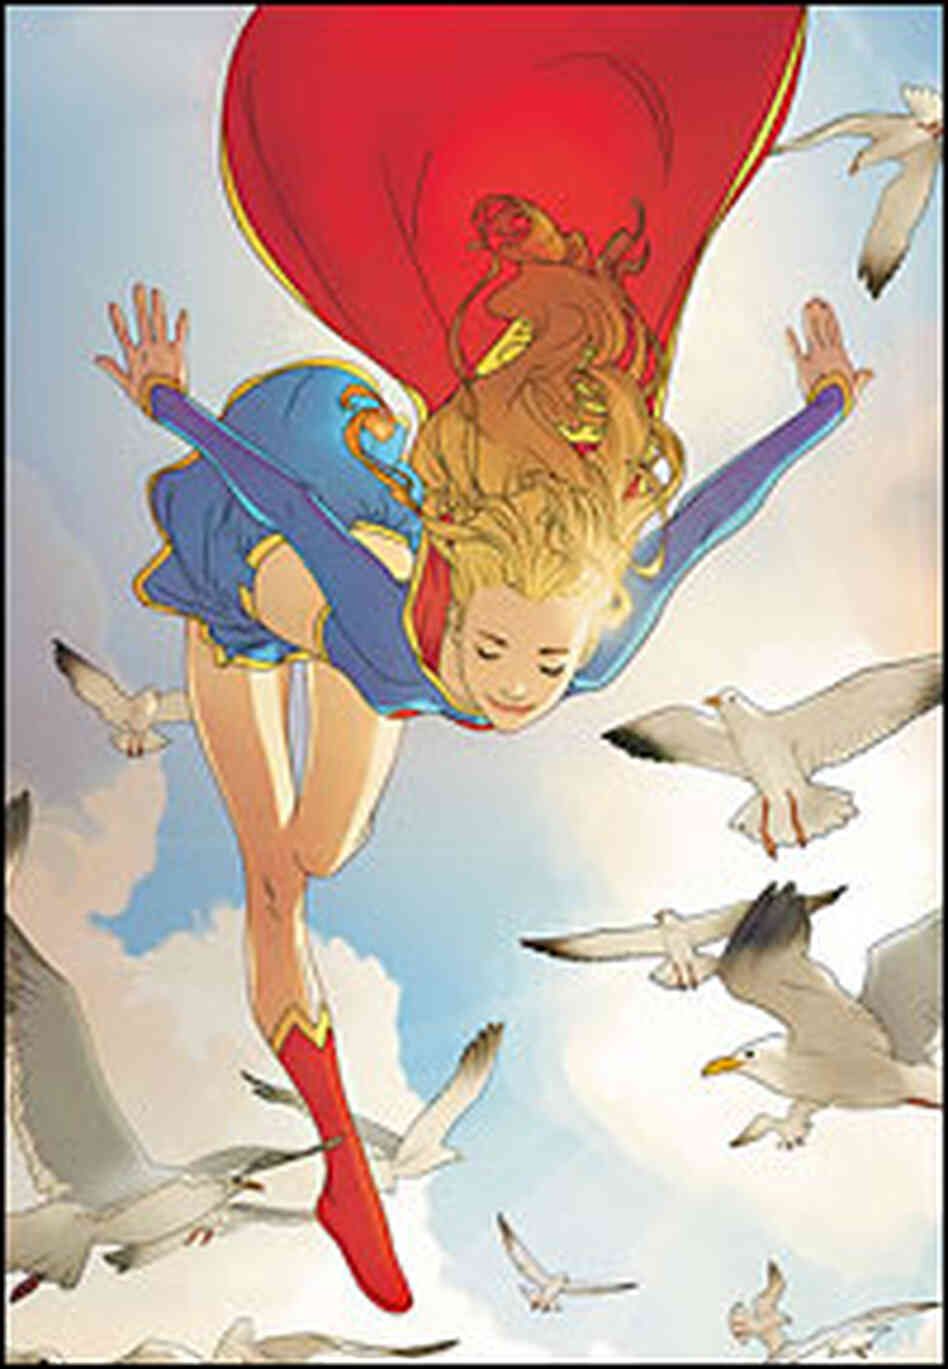 Supergirl flying confidently